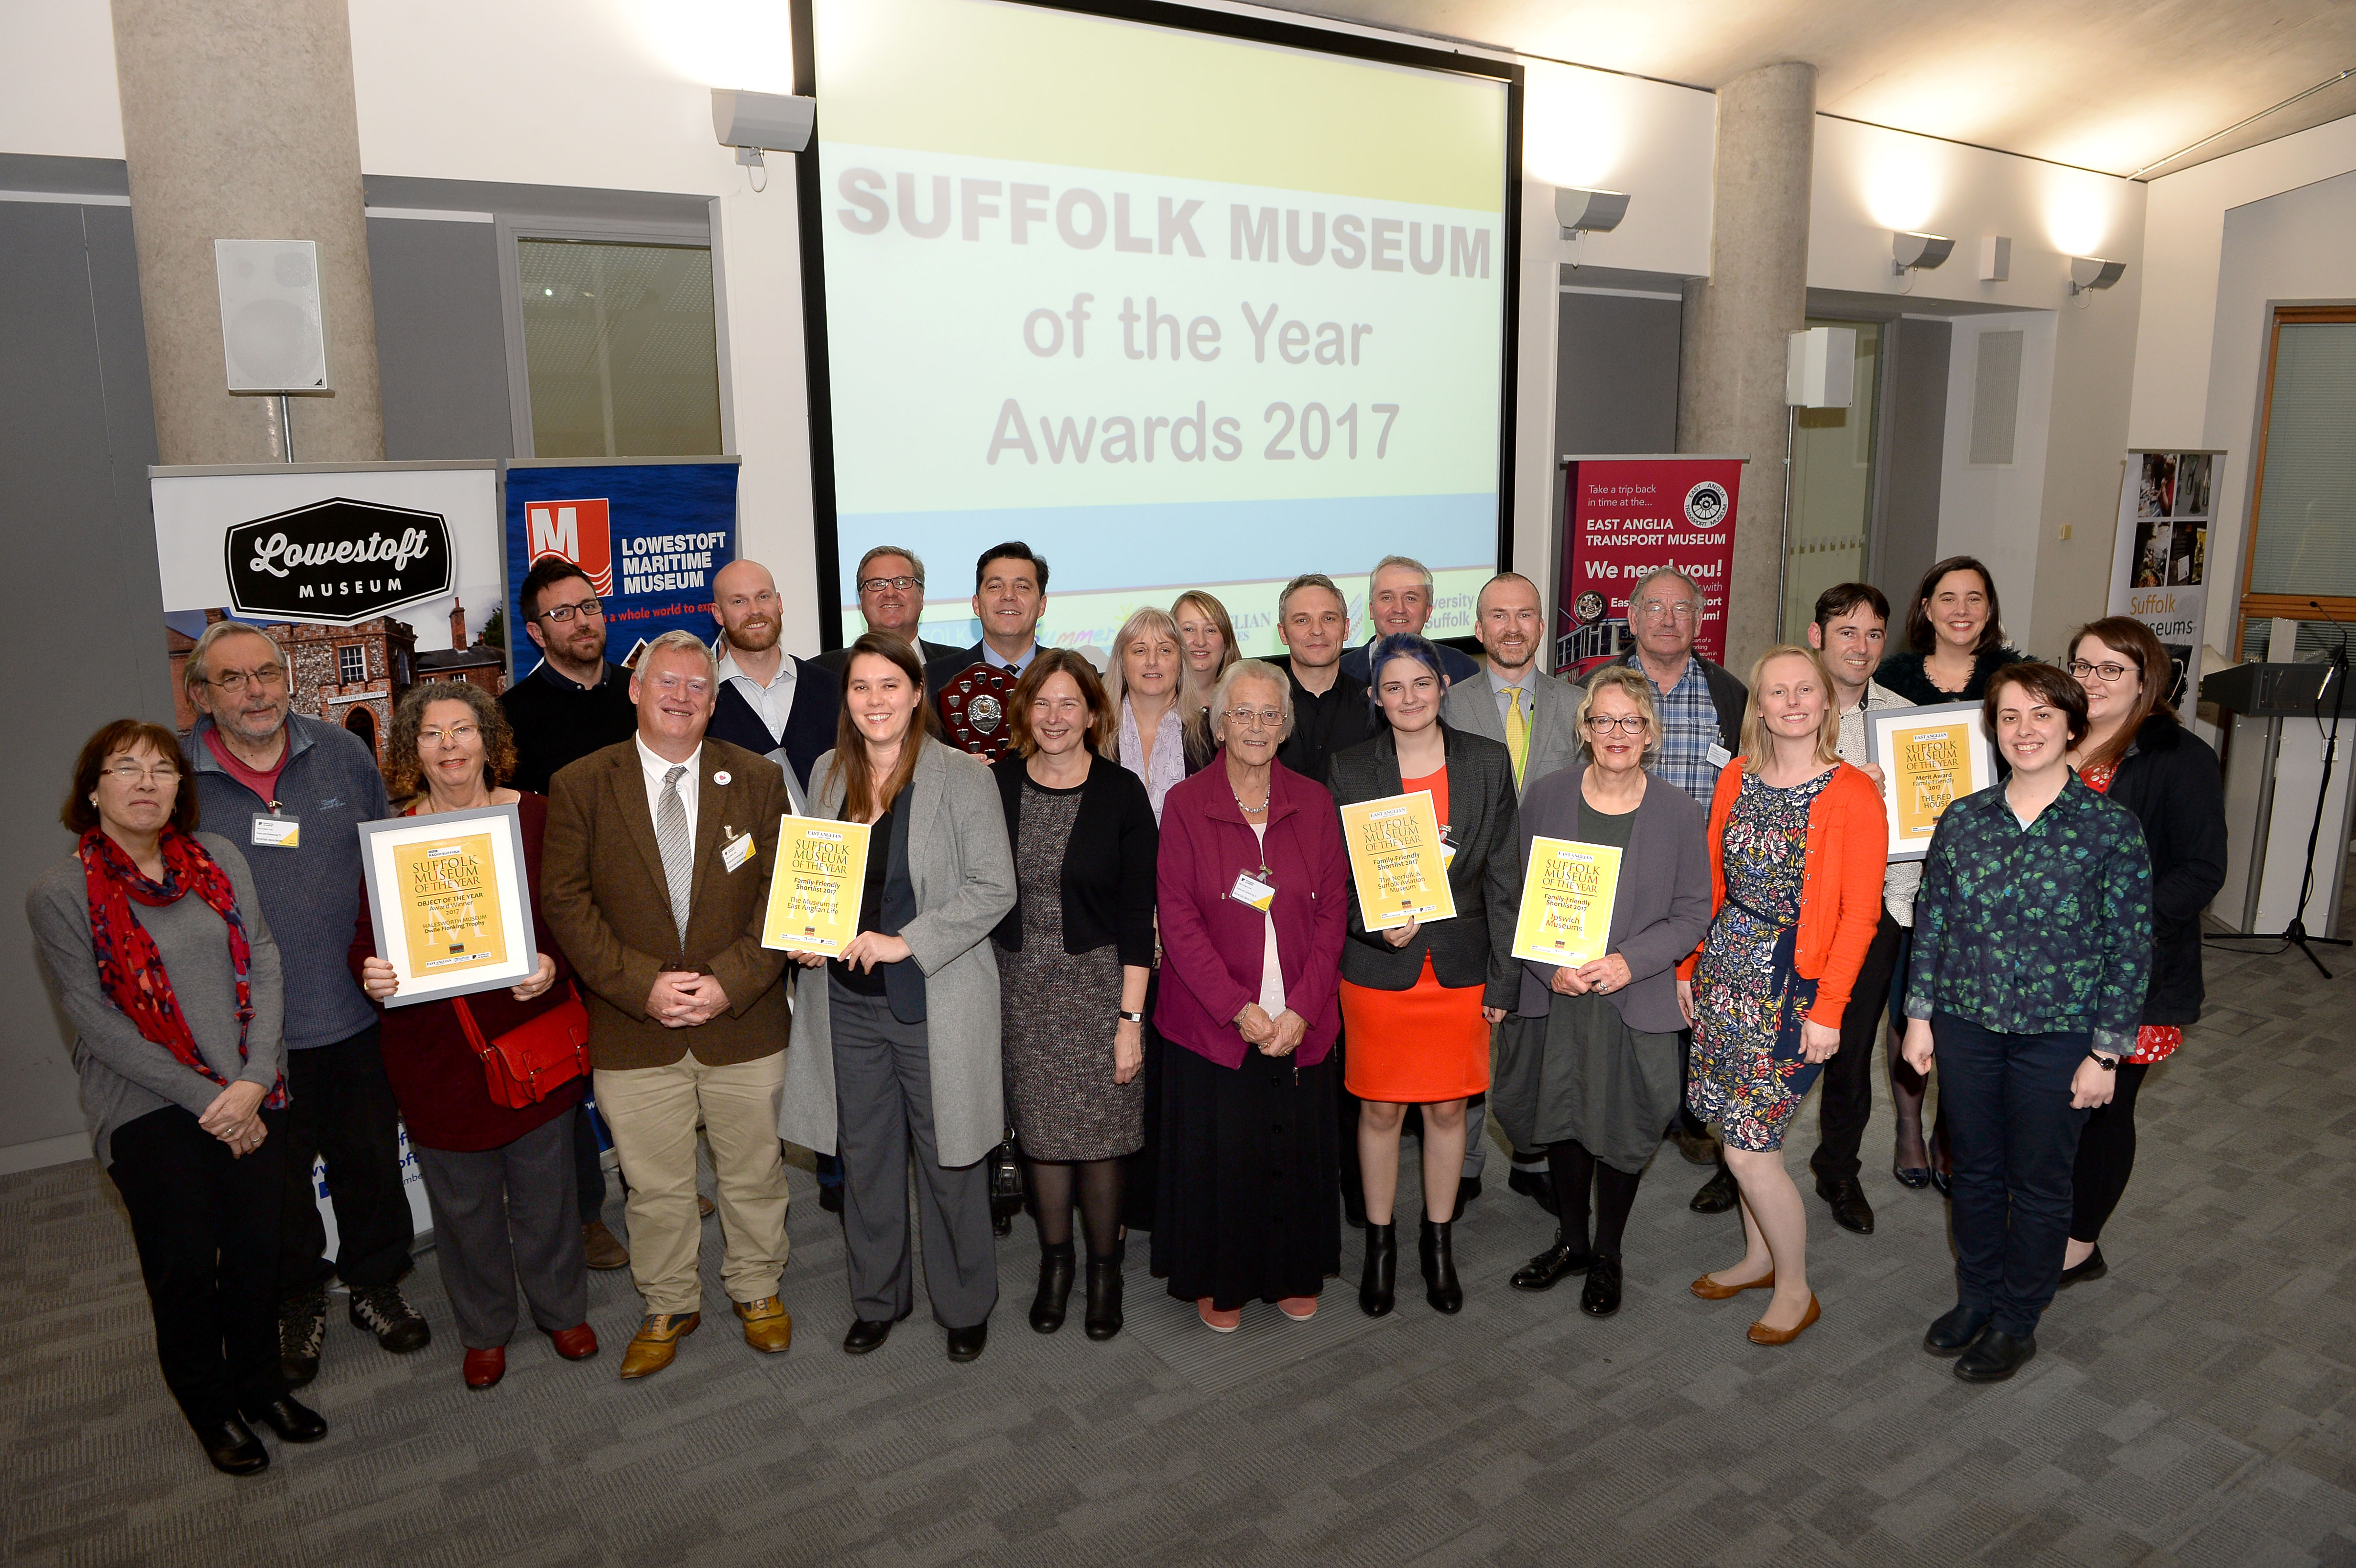 West Suffolk Museum's celebrate Awards wins